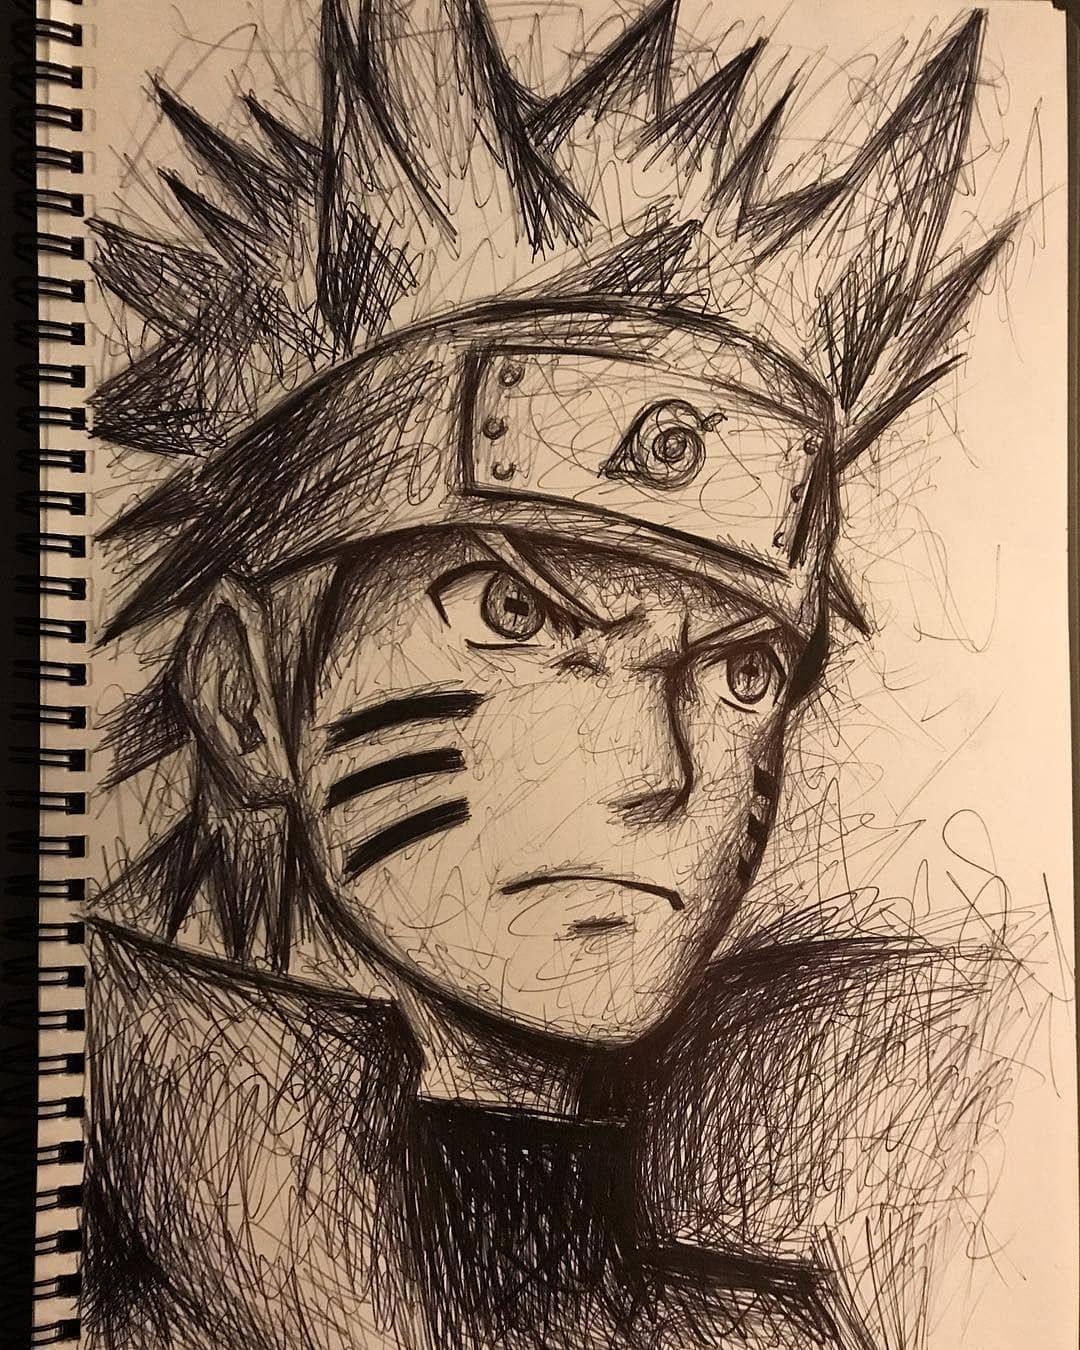 Anime Drawing Ideas Anime Art Features 31k On Instagram Naruto Sketch Anime Sketch Wallpaper Naruto Shippuden